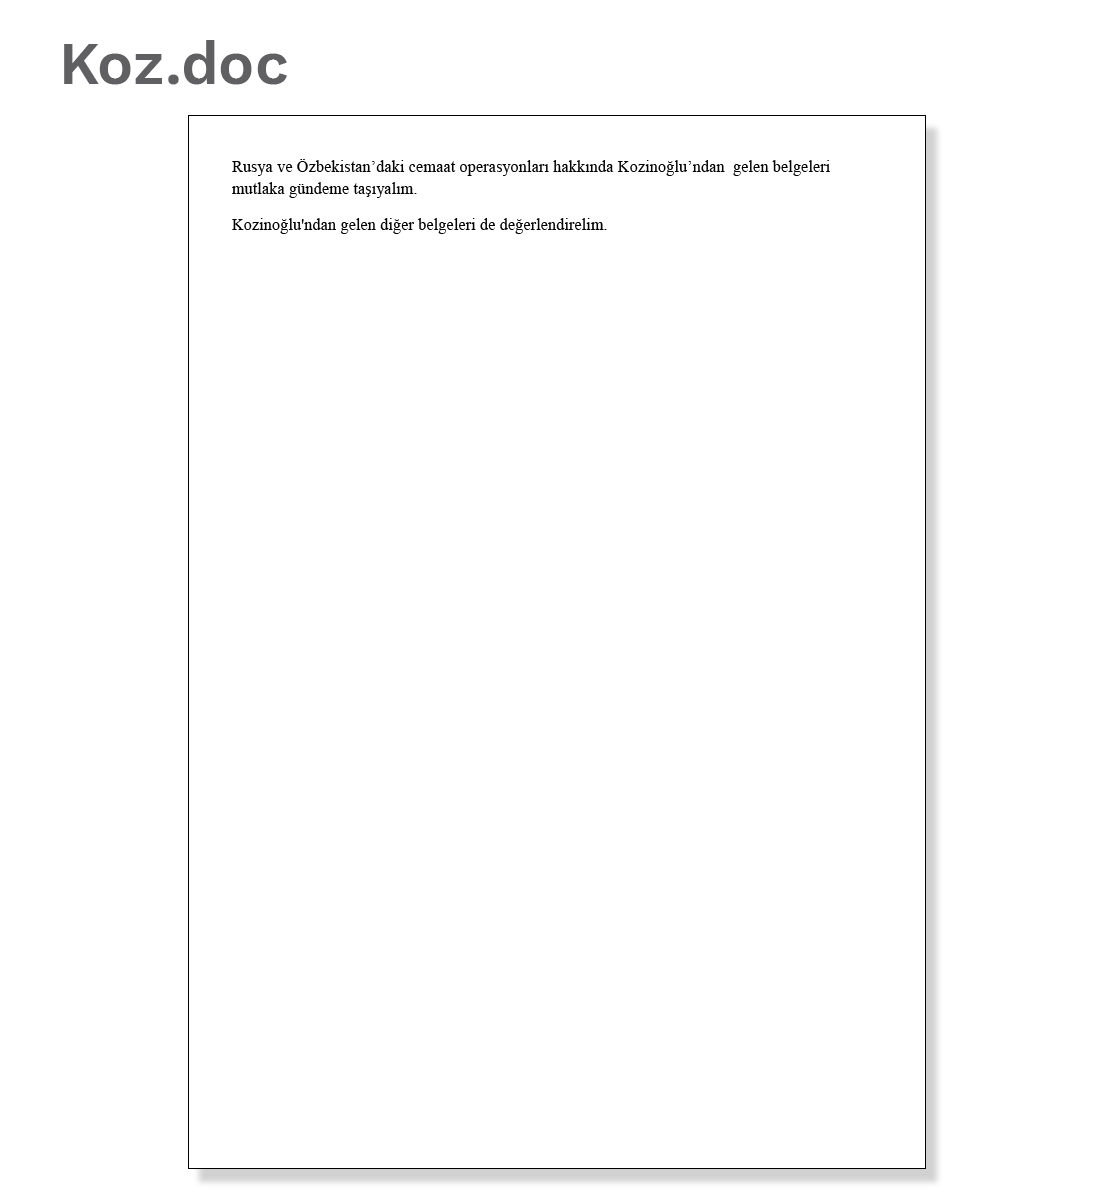 Document 3: Koz.doc